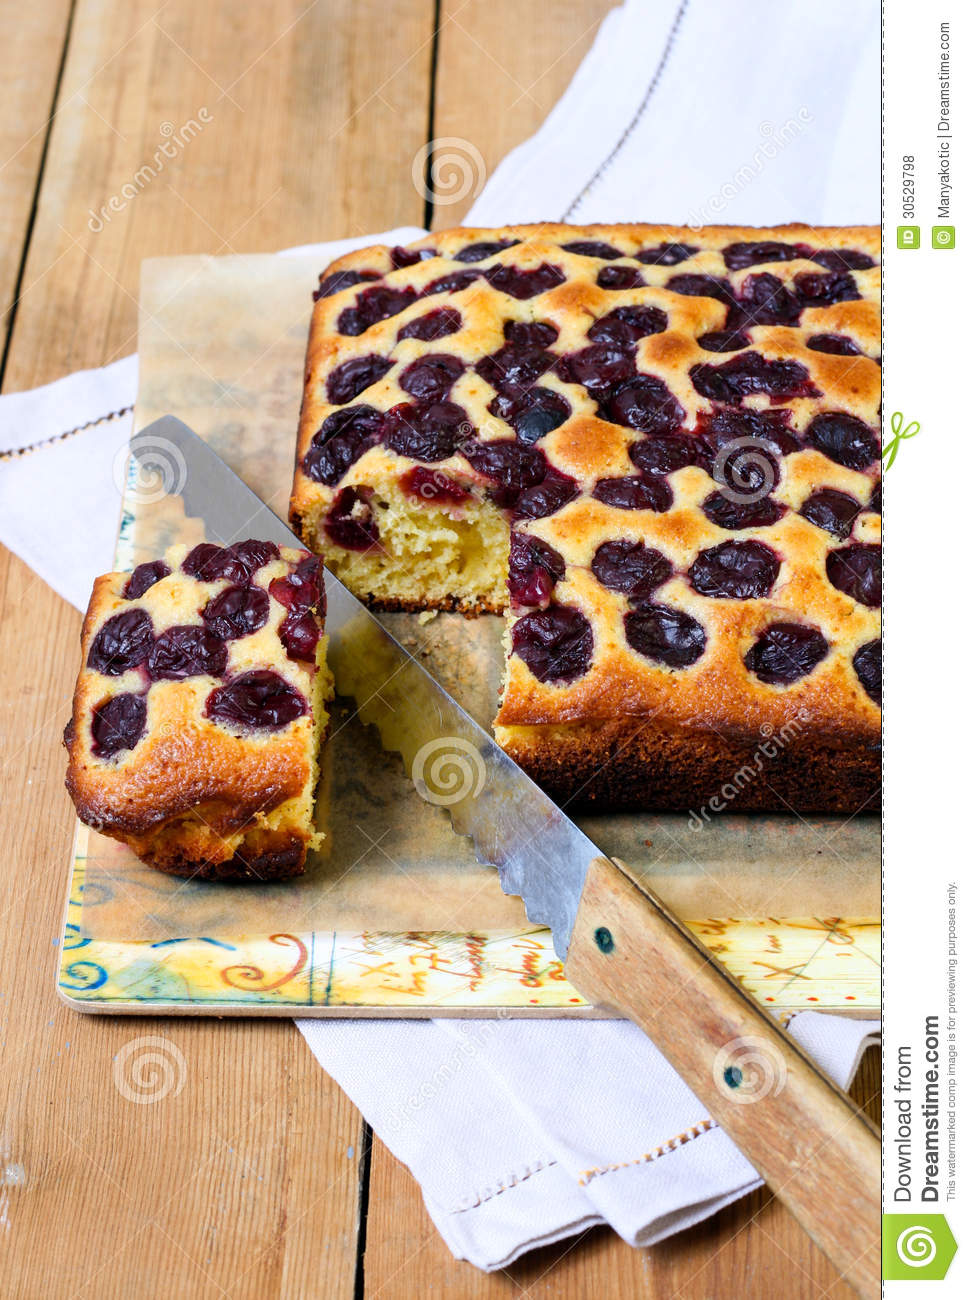 Cherry Cornmeal Cake Royalty Free Stock Photos - Image: 30529798